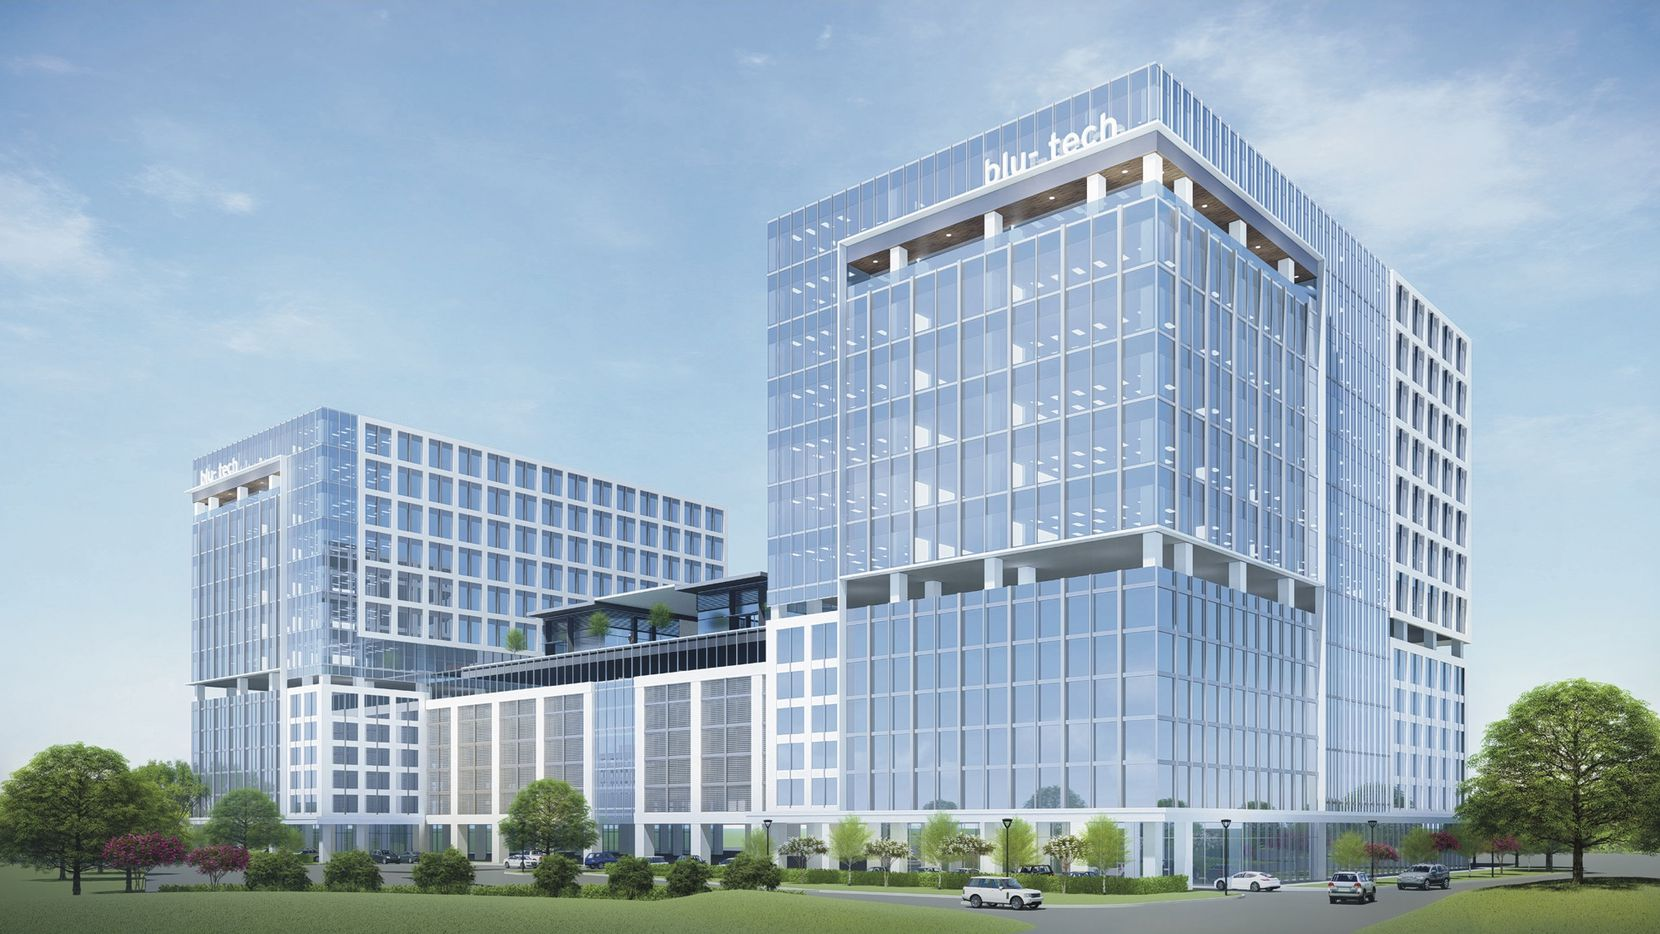 The first phase of the Headquarters II development will open on the Dallas North Tollway in early 2020.